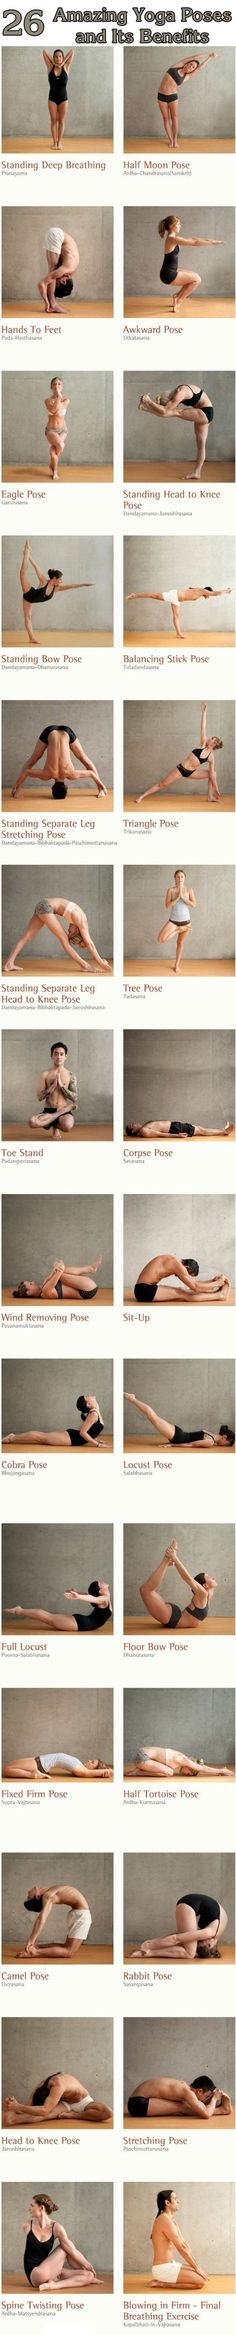 Amazing Benefits Of Yoga :Overall fitness of body is achieved through its various techniques of Asanas/Postures, Breathing/Pranayama and Meditation.: